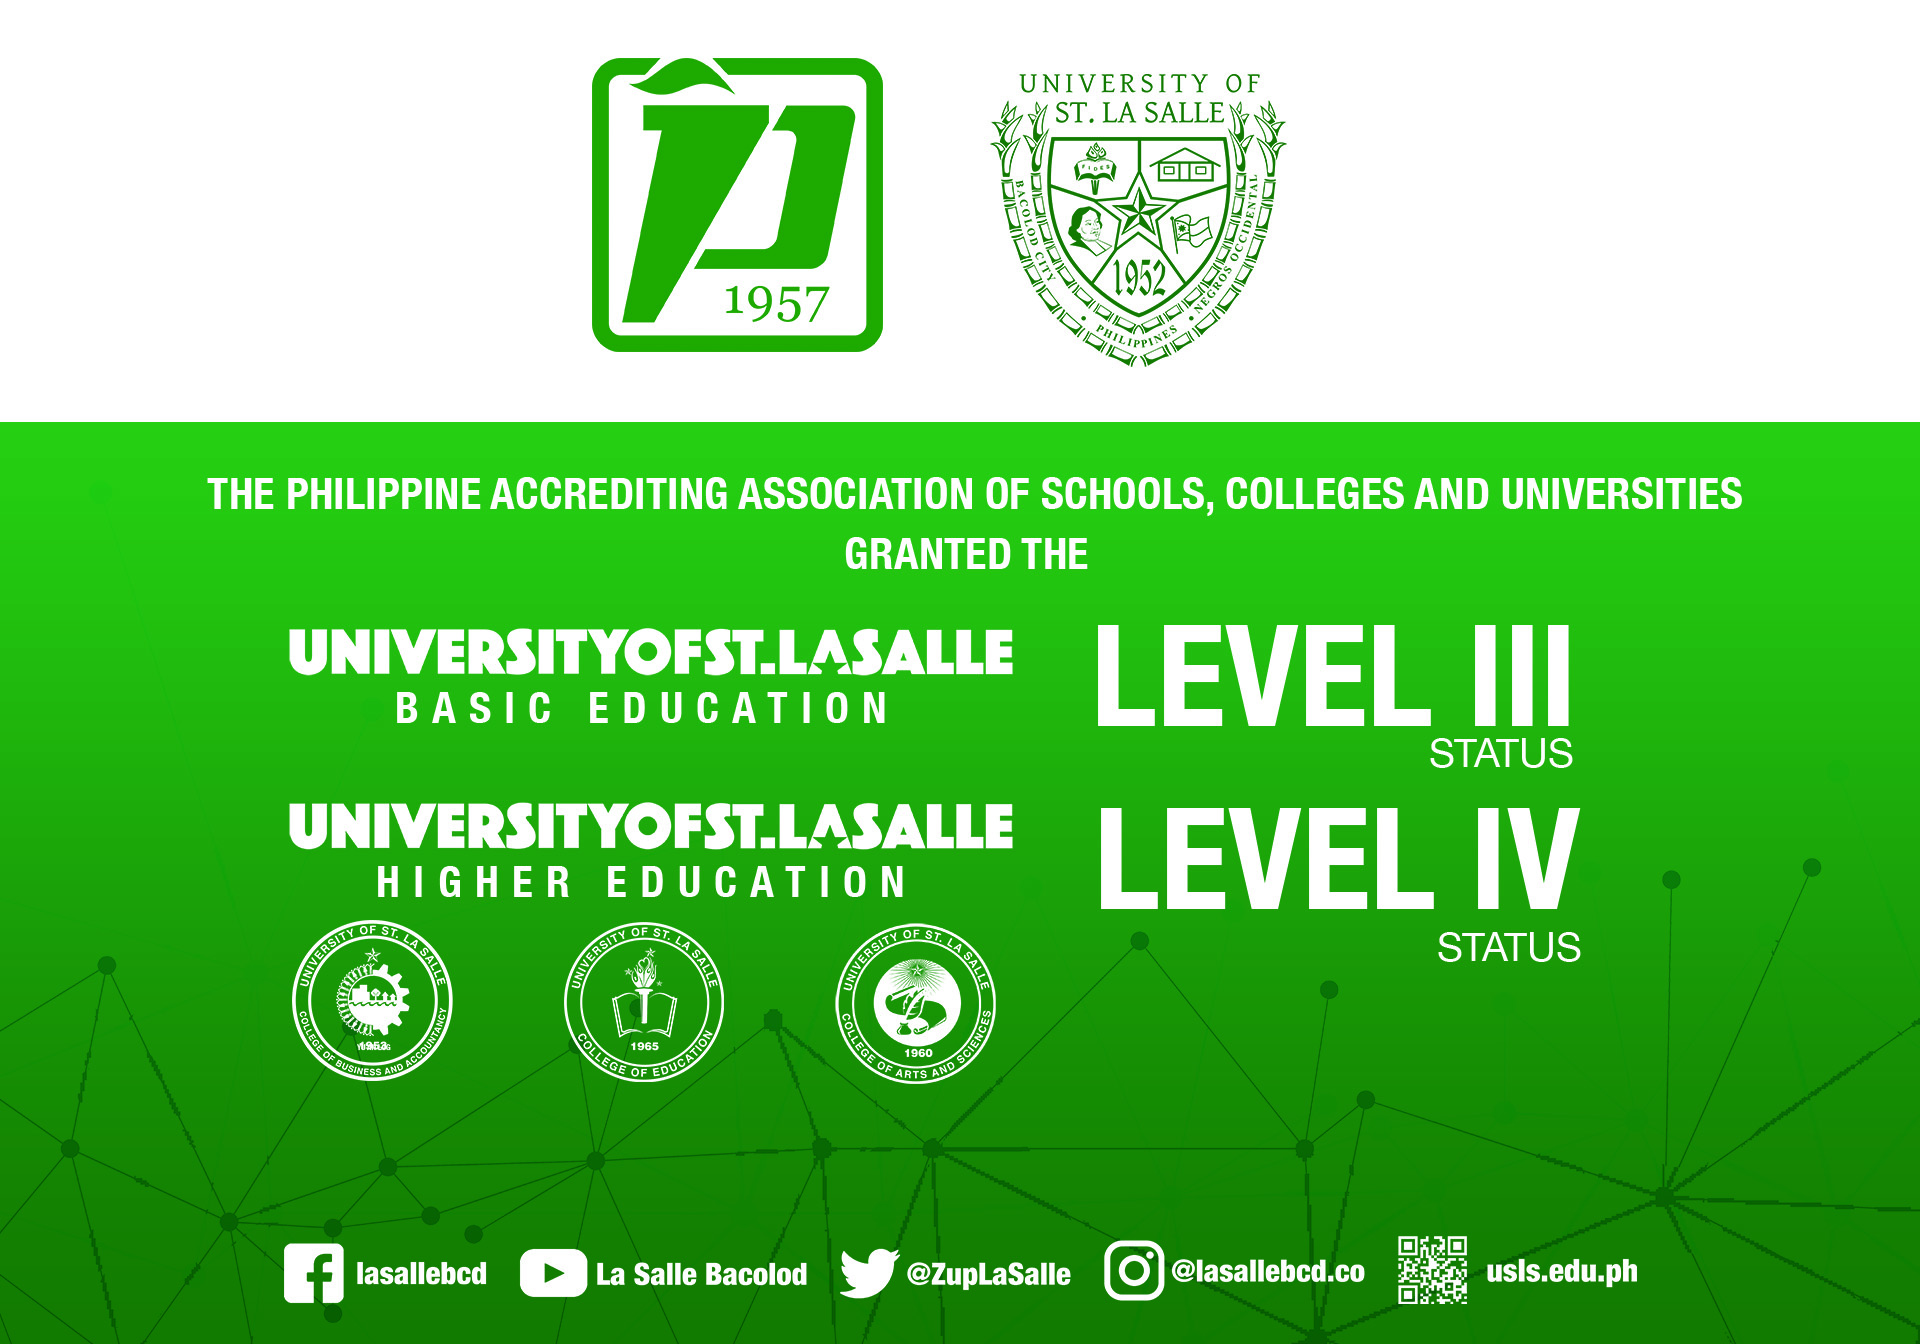 PAASCU-Grants-USLS-Level-3-Status-for-Basic-Education-and-Level-4-Status-for-HEI-Programs.jpg